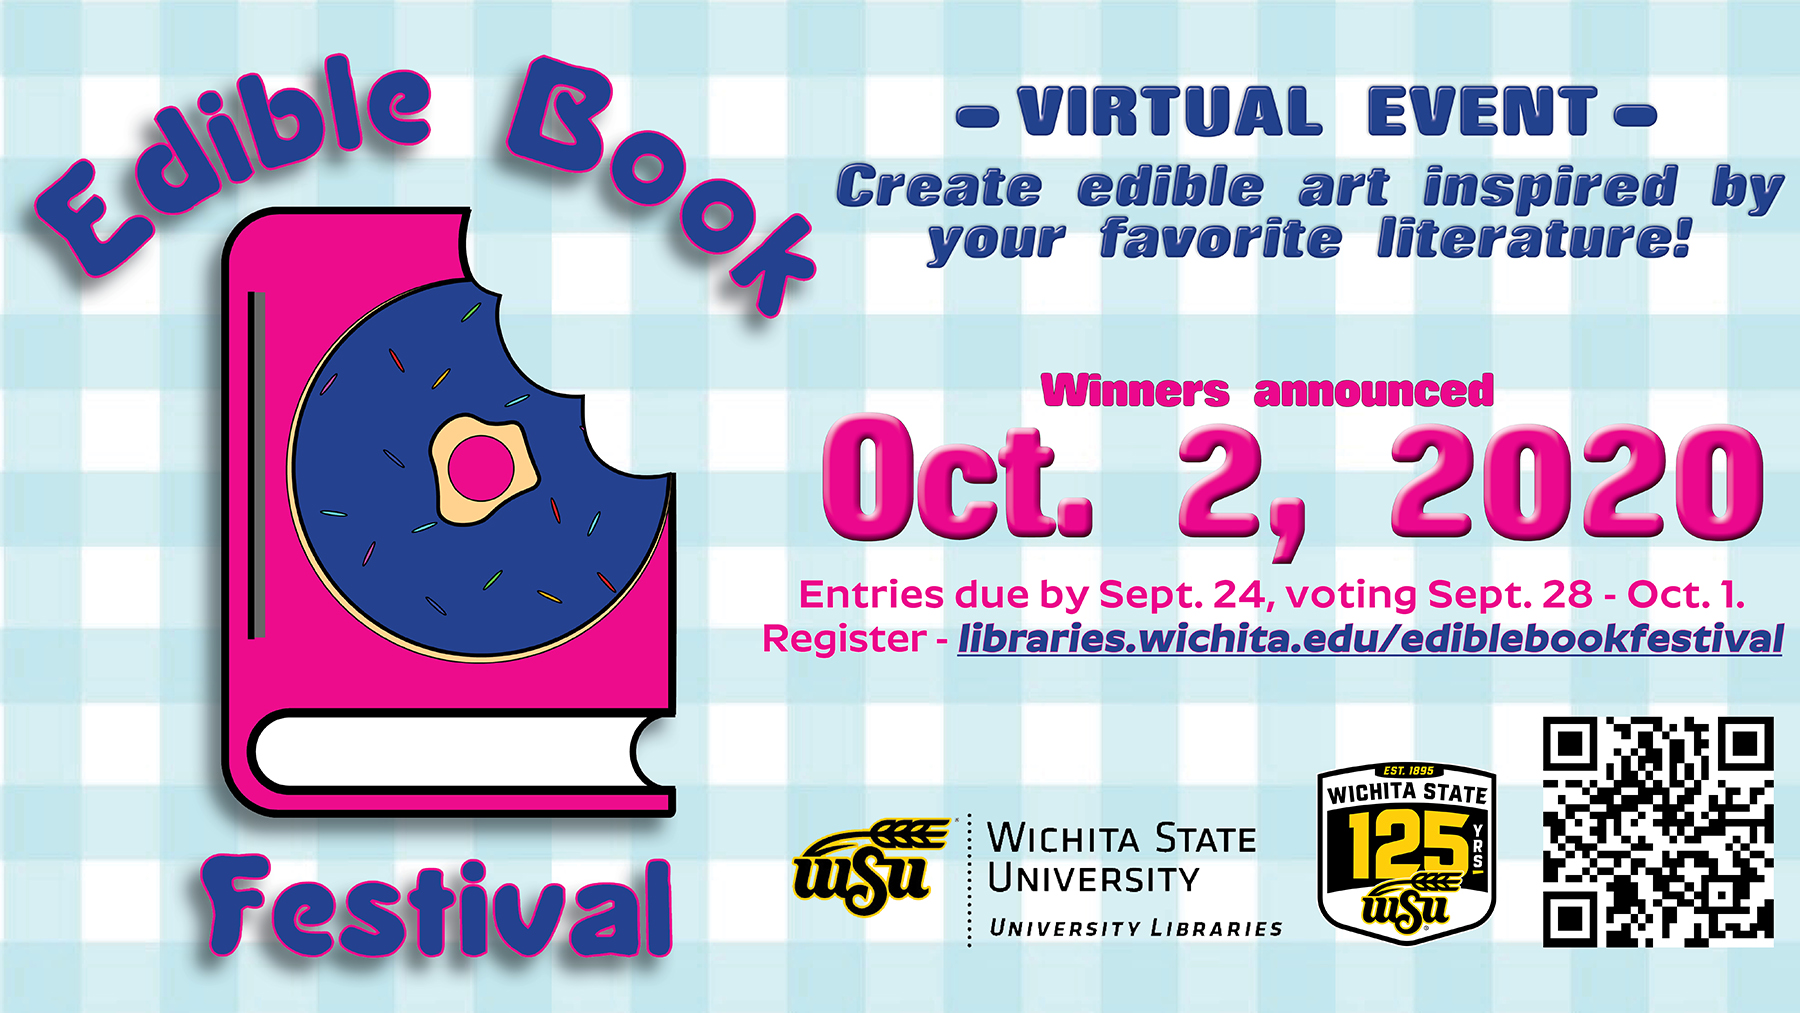 Edible Book Festival Entries Due